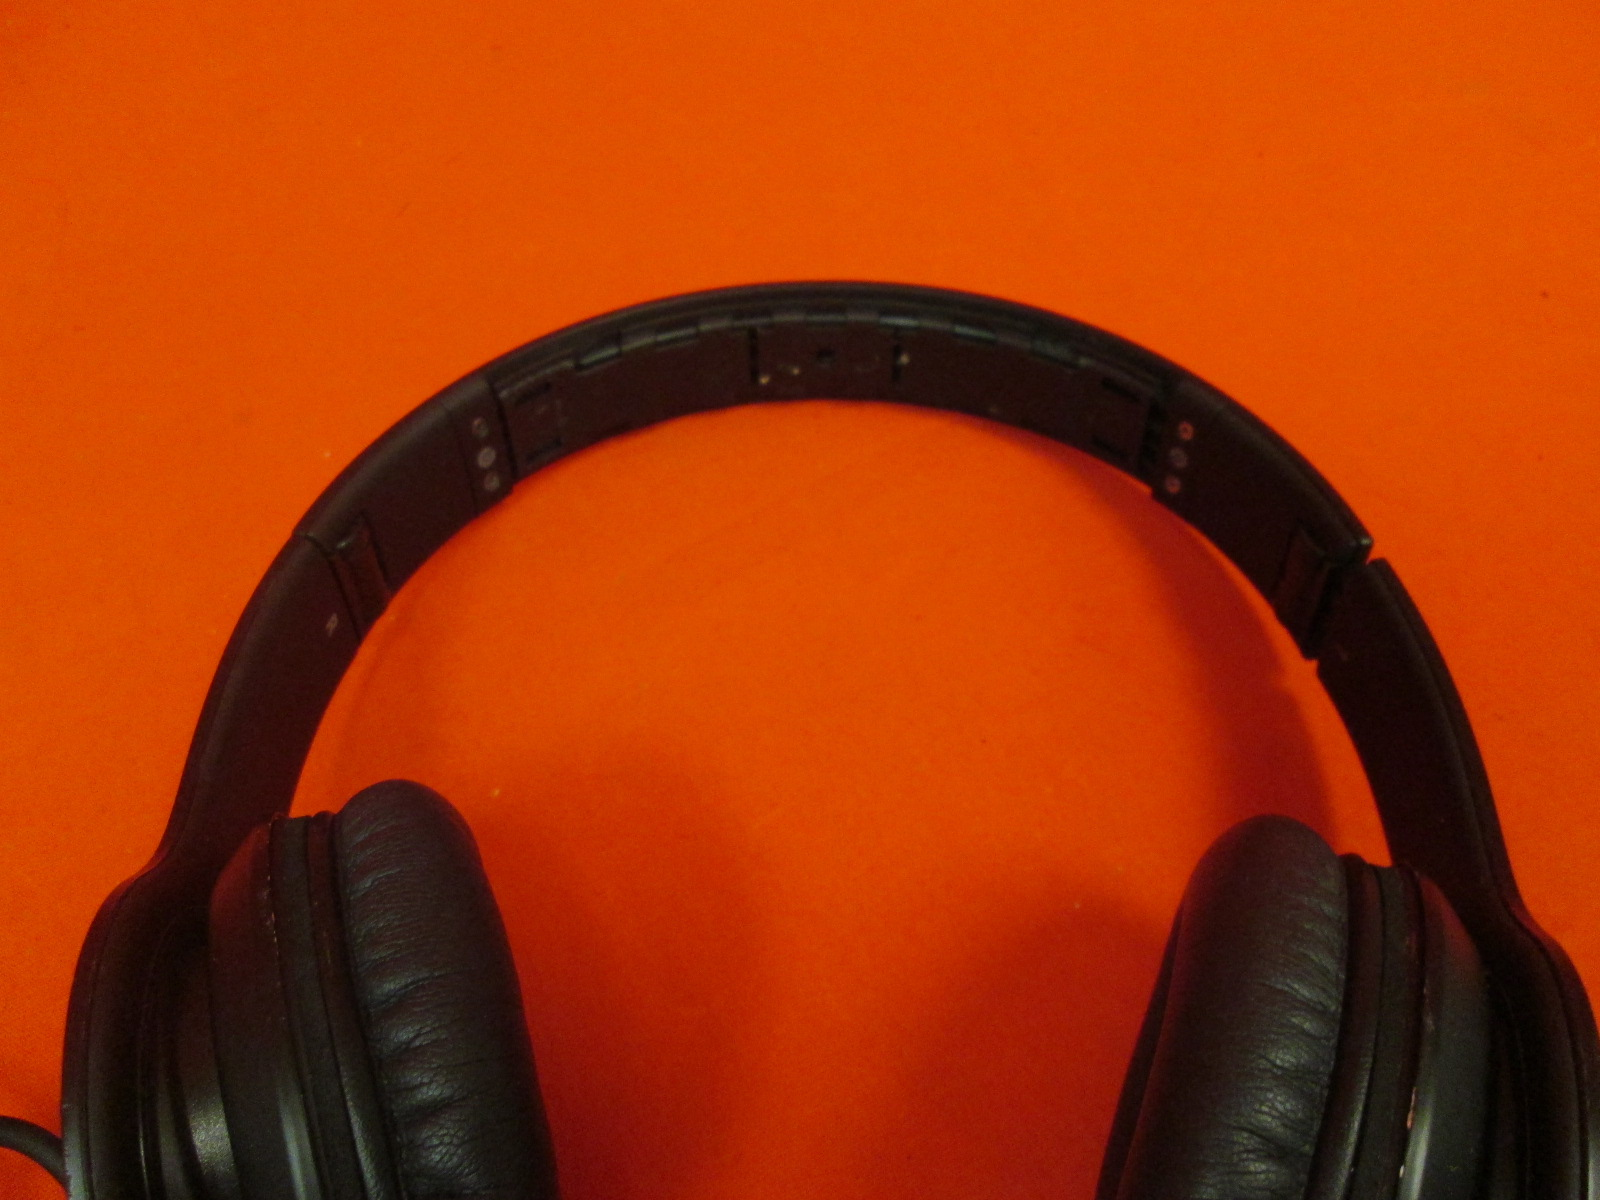 Image 1 of Beats Solo HD Wired On-Ear Headphone Black